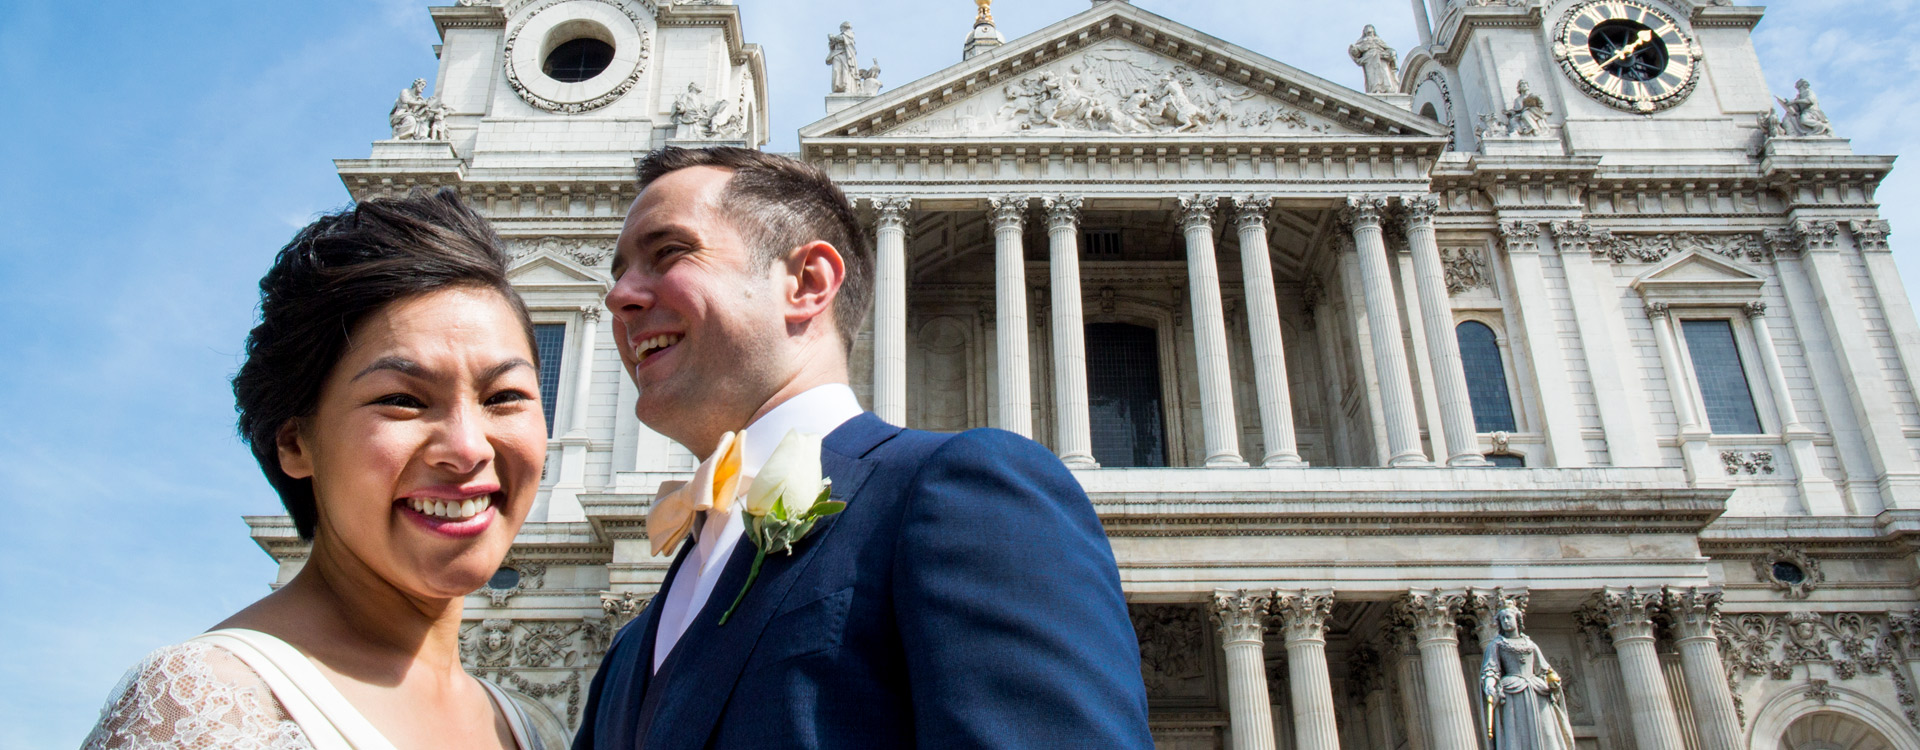 Unique bride and groom are smiling in font of St Paul's Cathedral, its a sunny day.